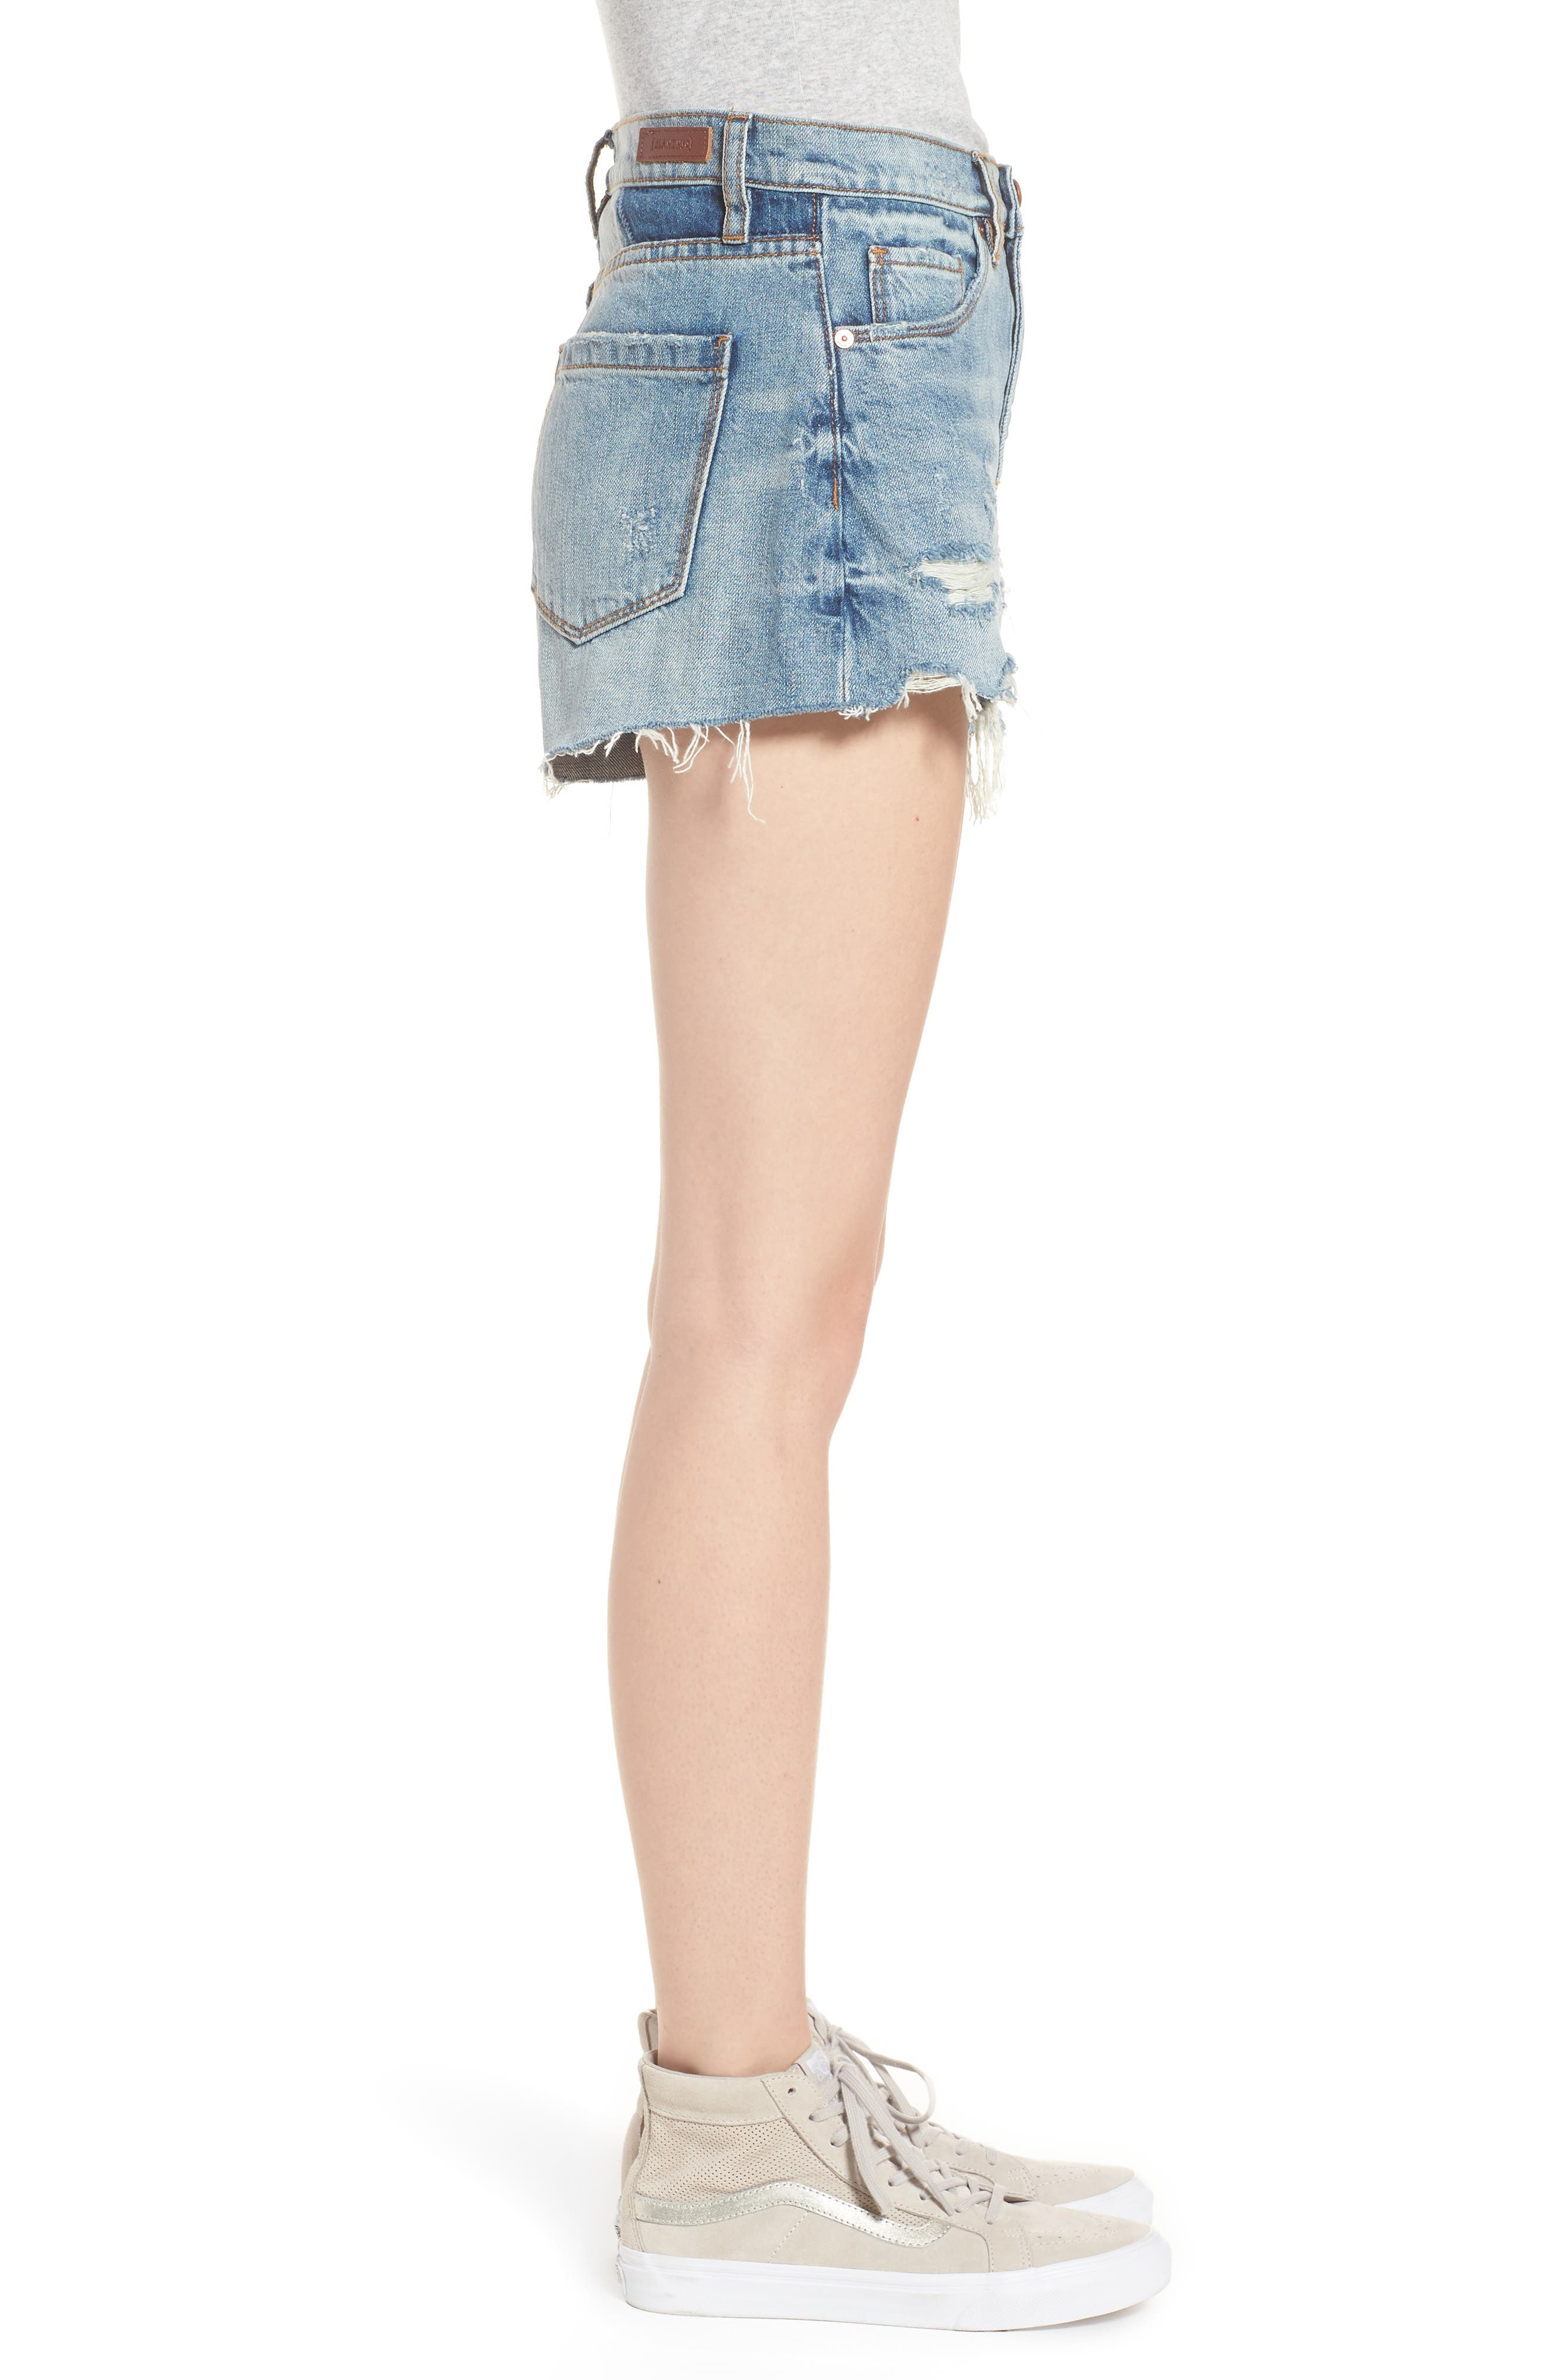 Panic Prevention Ripped Cutoff Denim Shorts,                             Alternate thumbnail 3, color,                             400